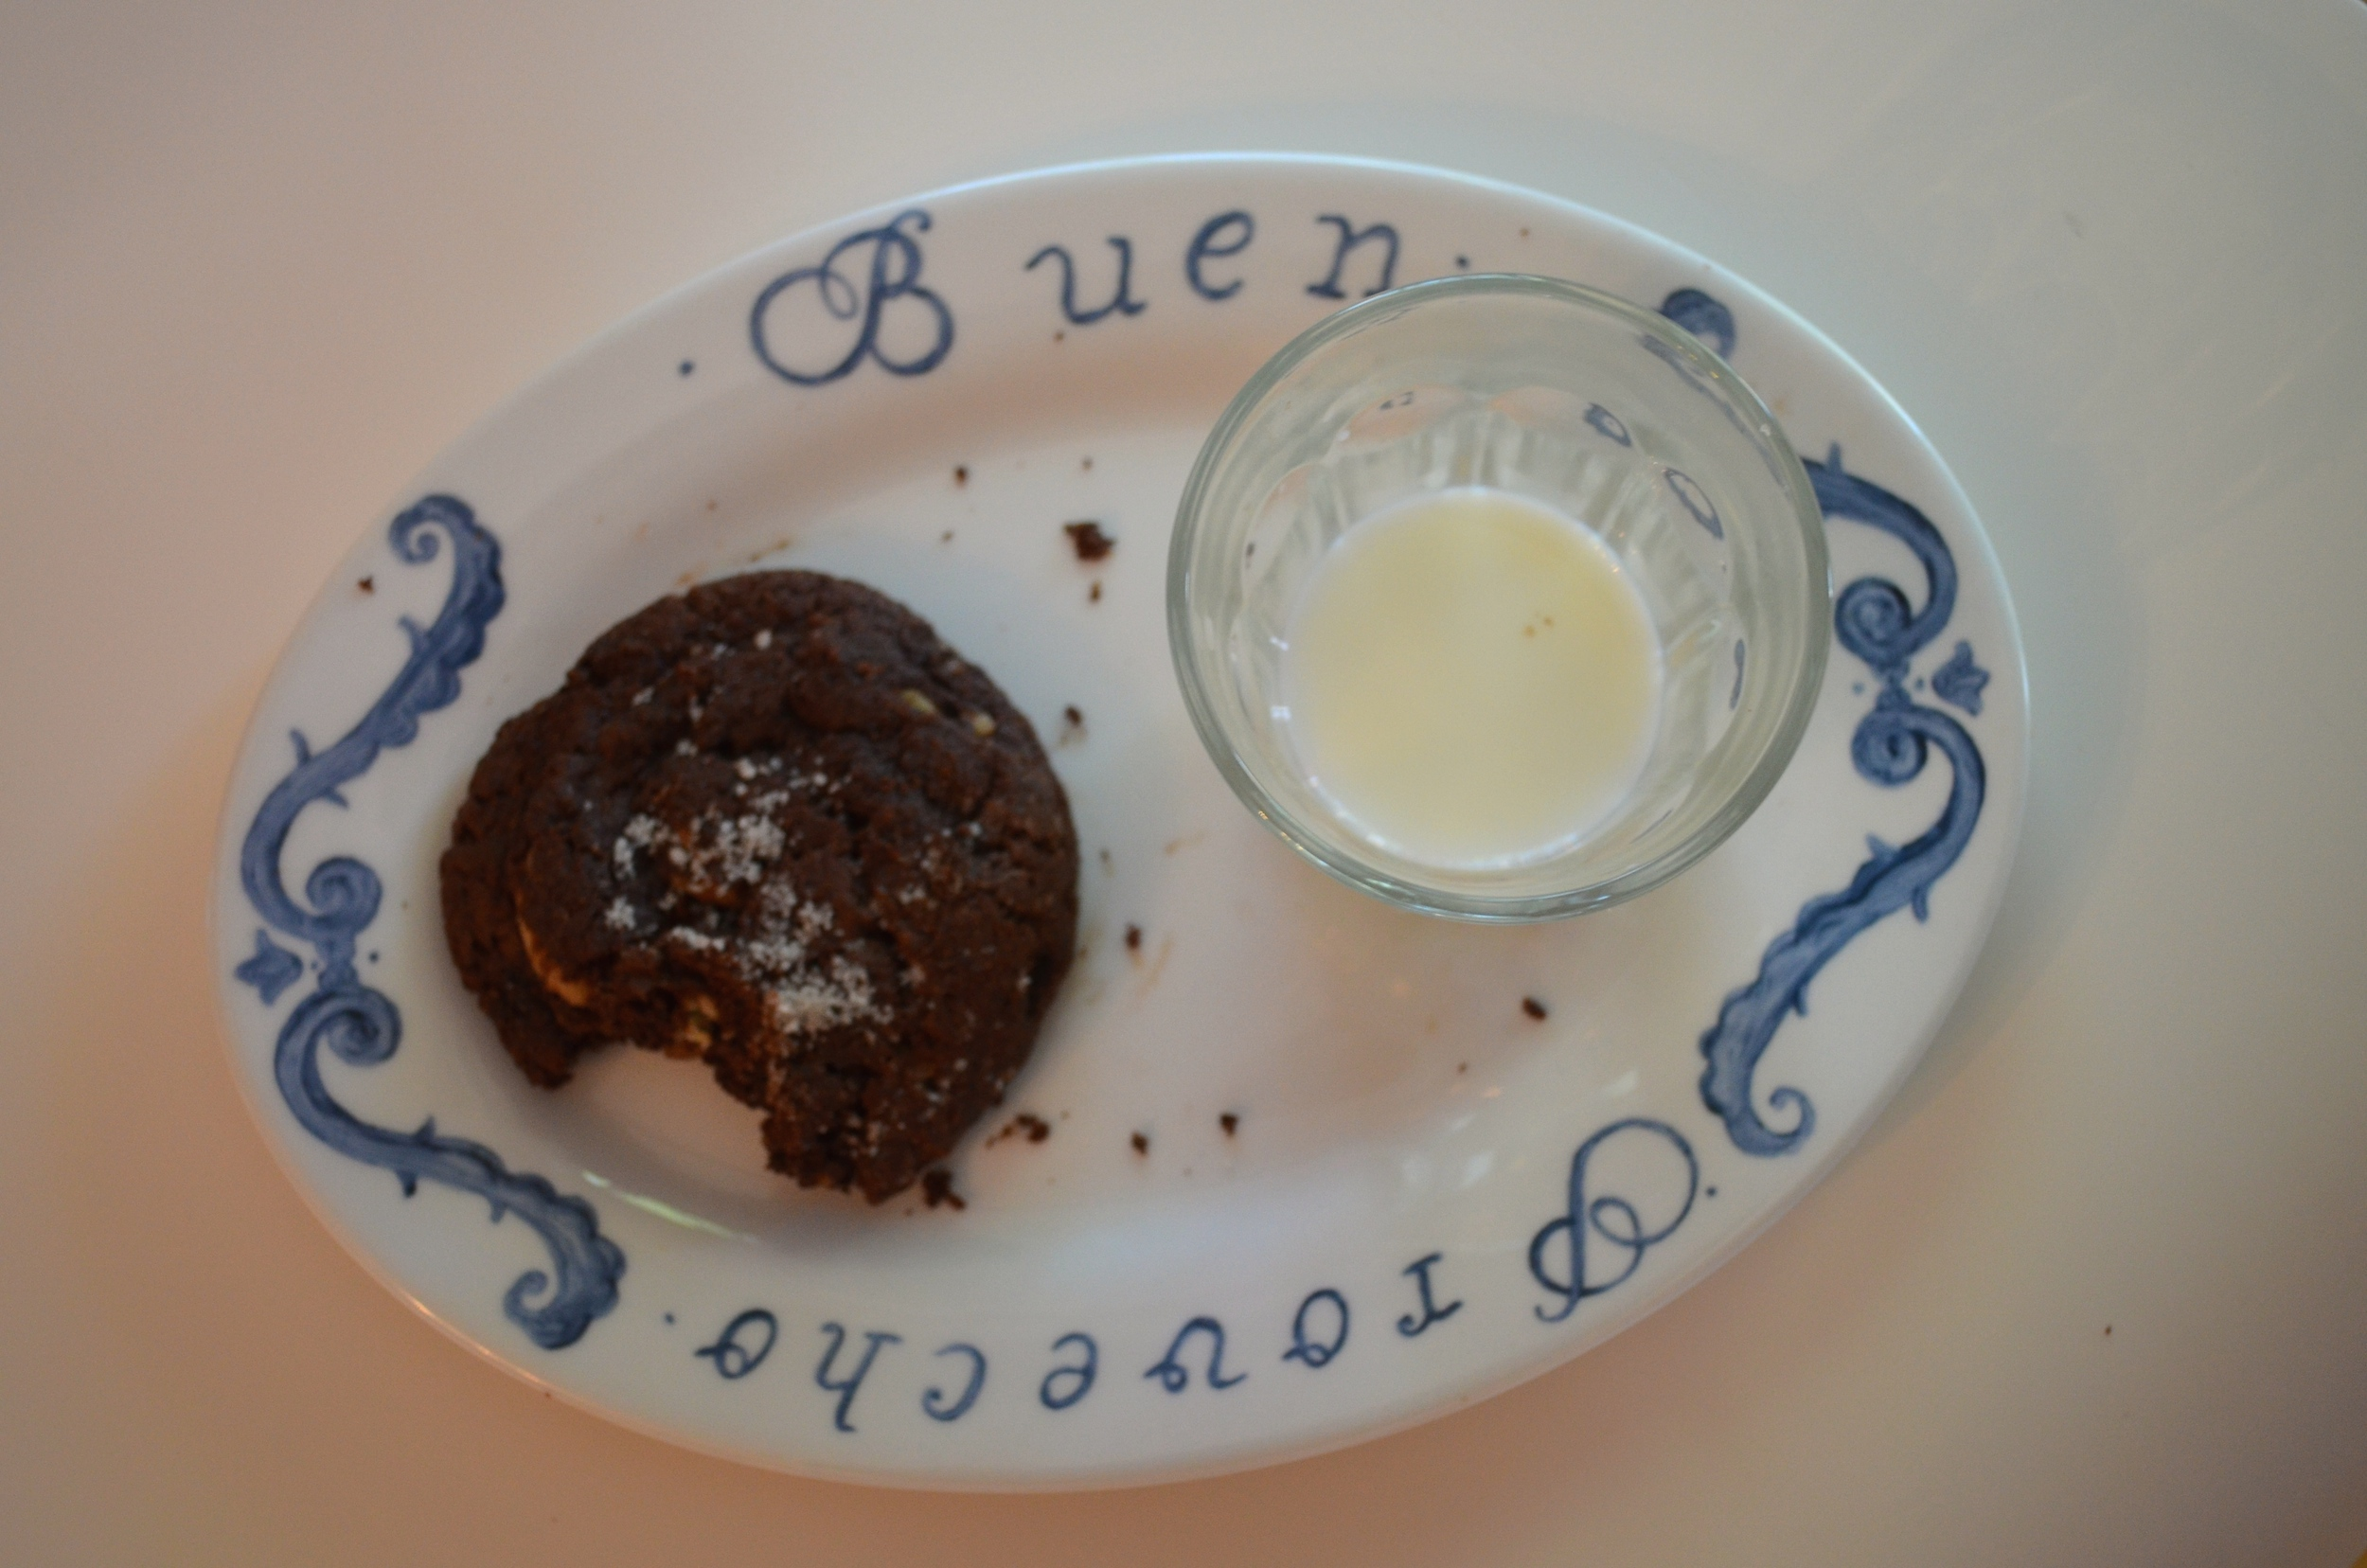 Salted brownie and milk....yum!